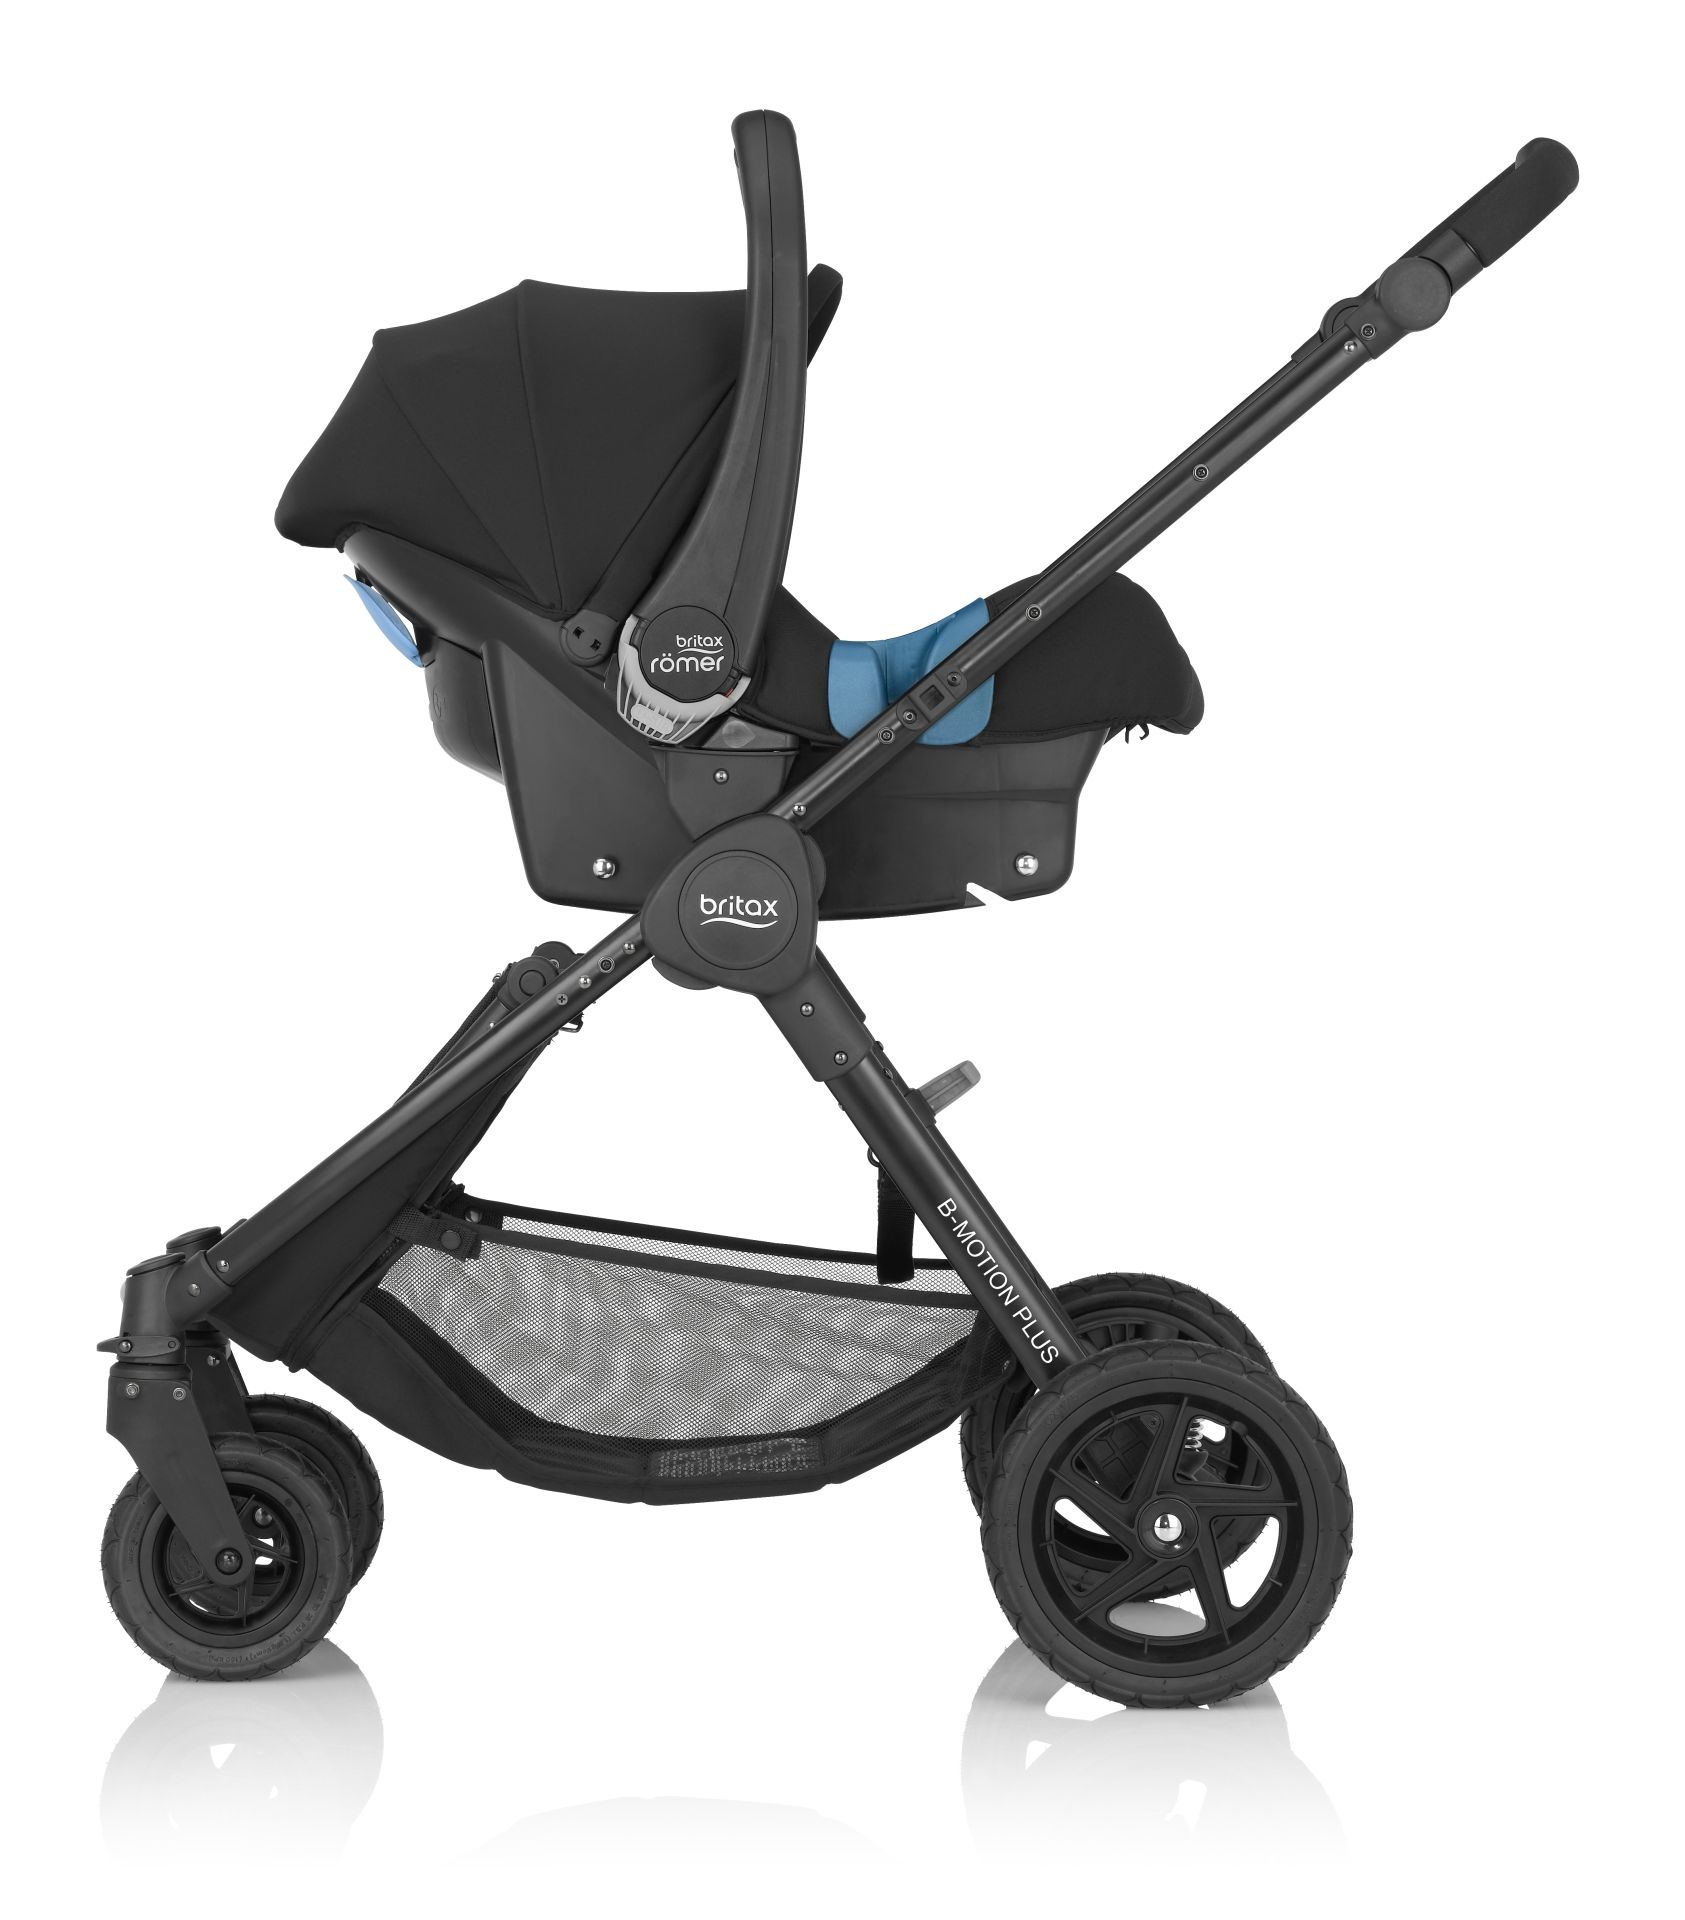 ... Britax B-Motion 4 Plus incl. Canopy Pack + Carrycot Attachment + infant carrier  sc 1 st  worldwide shipping   kidsroom & Britax B-Motion 4 Plus incl. Canopy Pack + Carrycot Attachment + ...